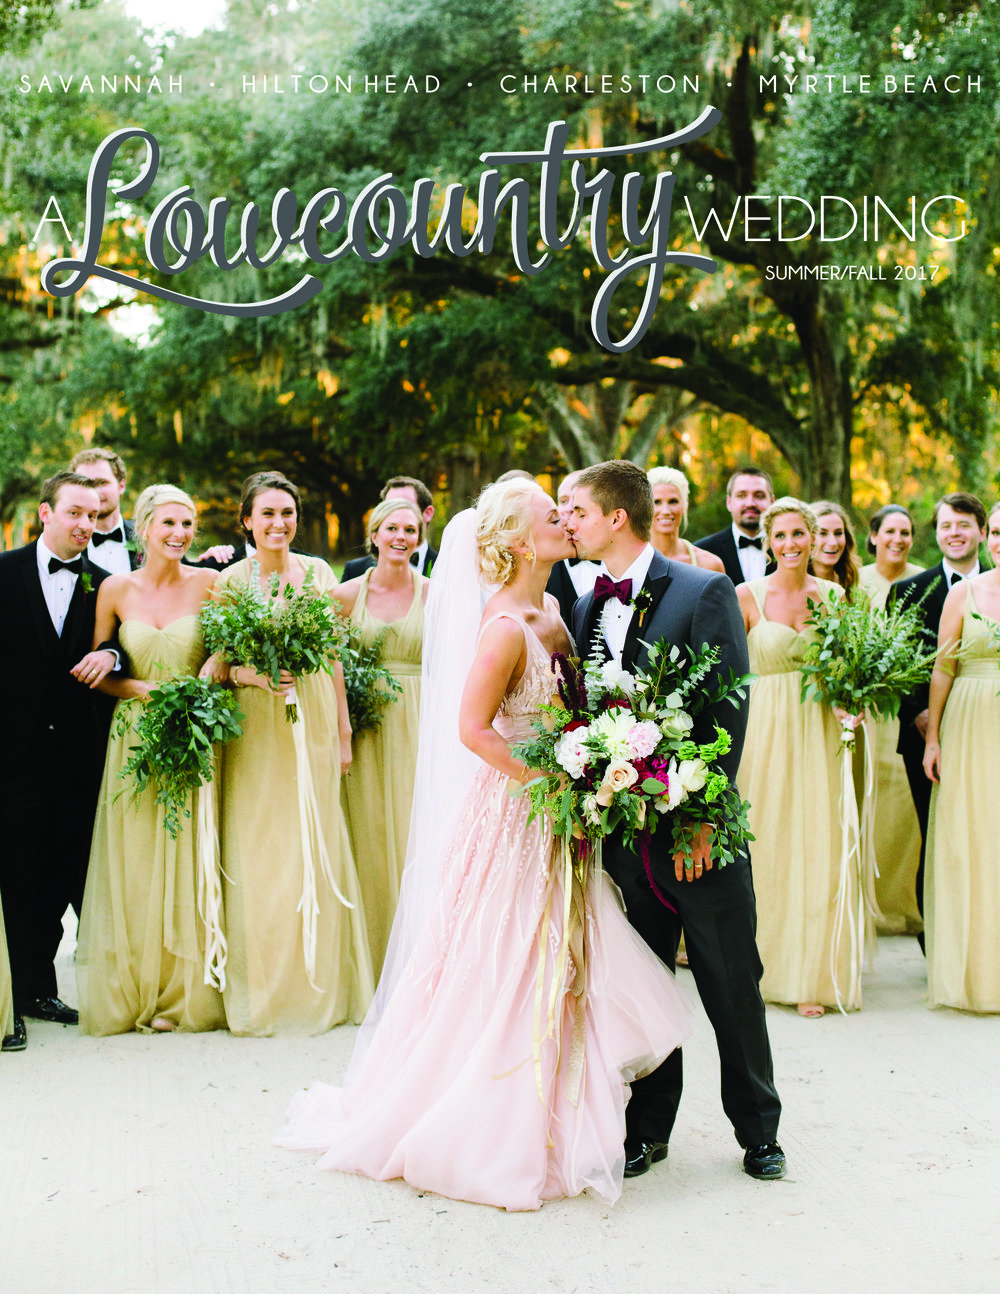 A Lowcountry Wedding Magazine Summer Fall 2017 issue